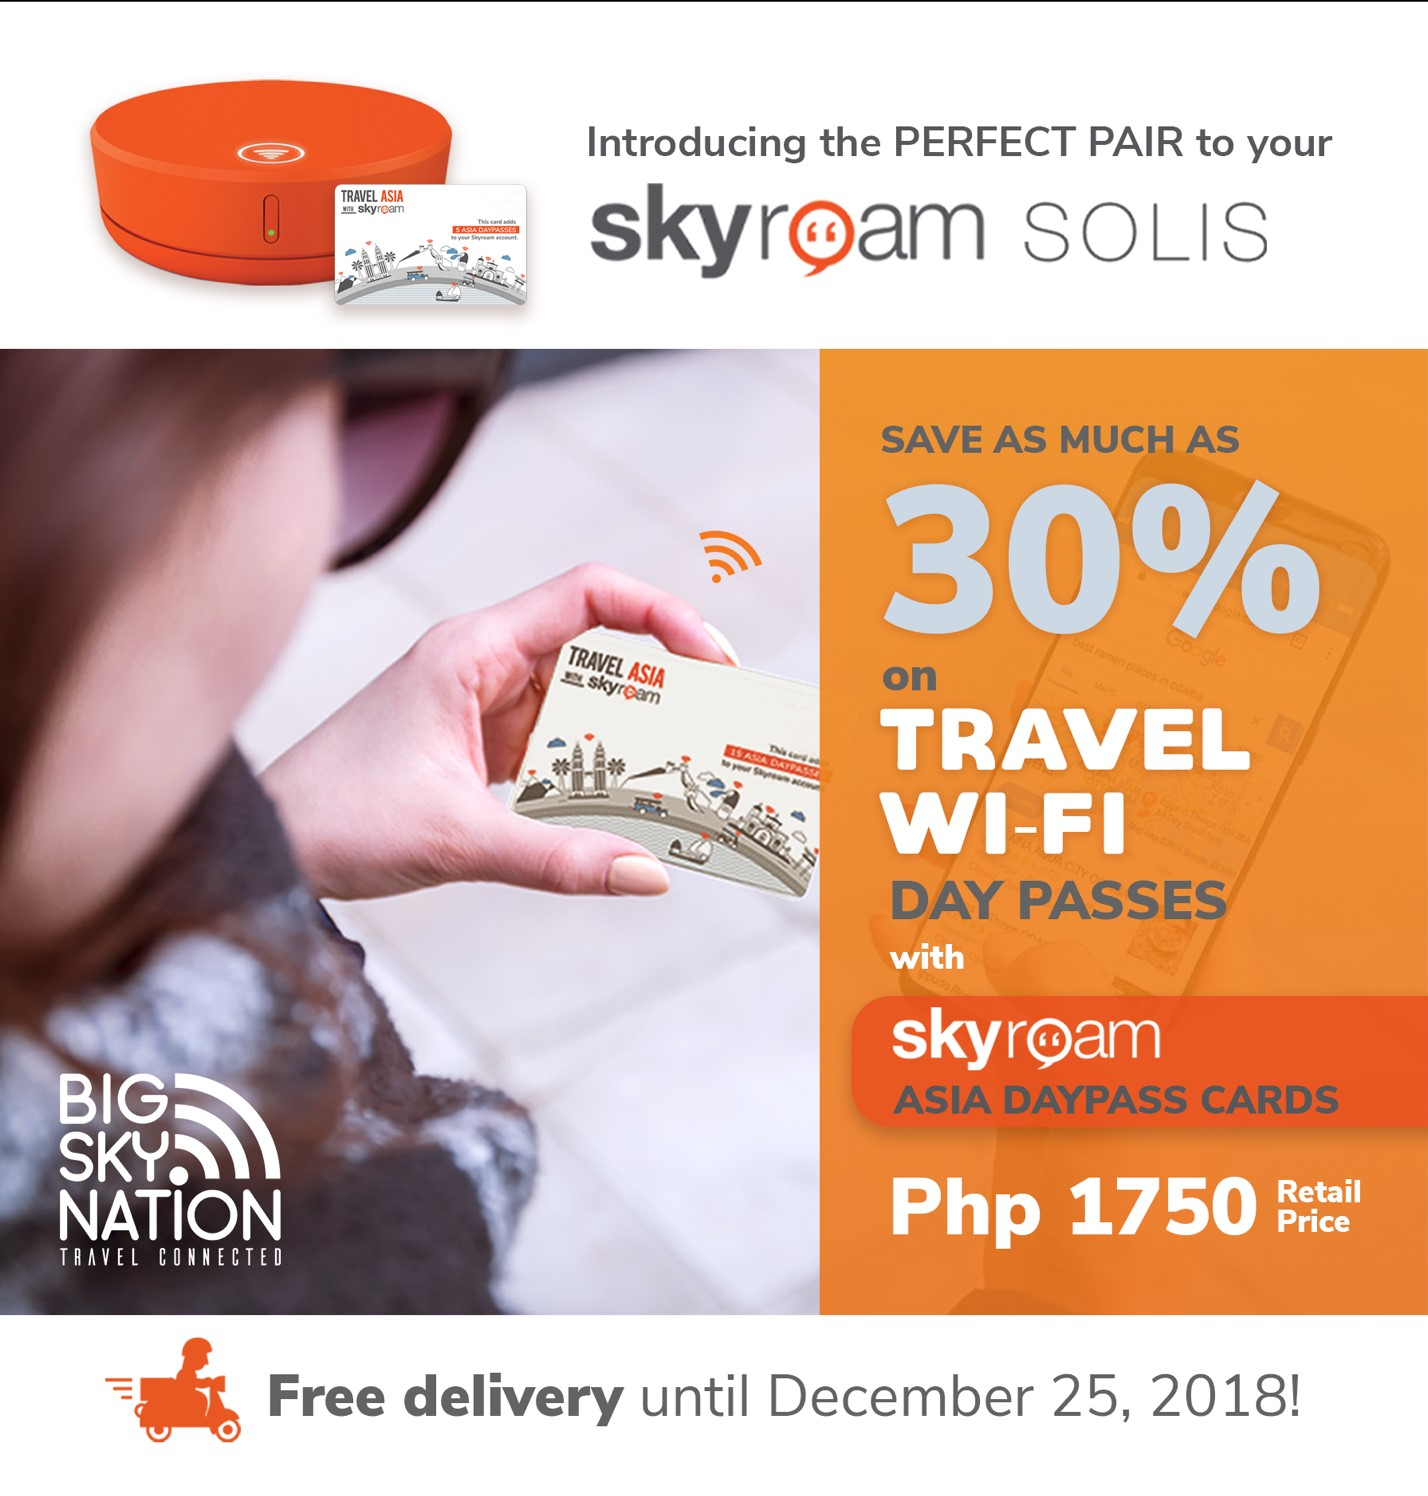 Introducing the Skyroam Asia Day Pass Cards